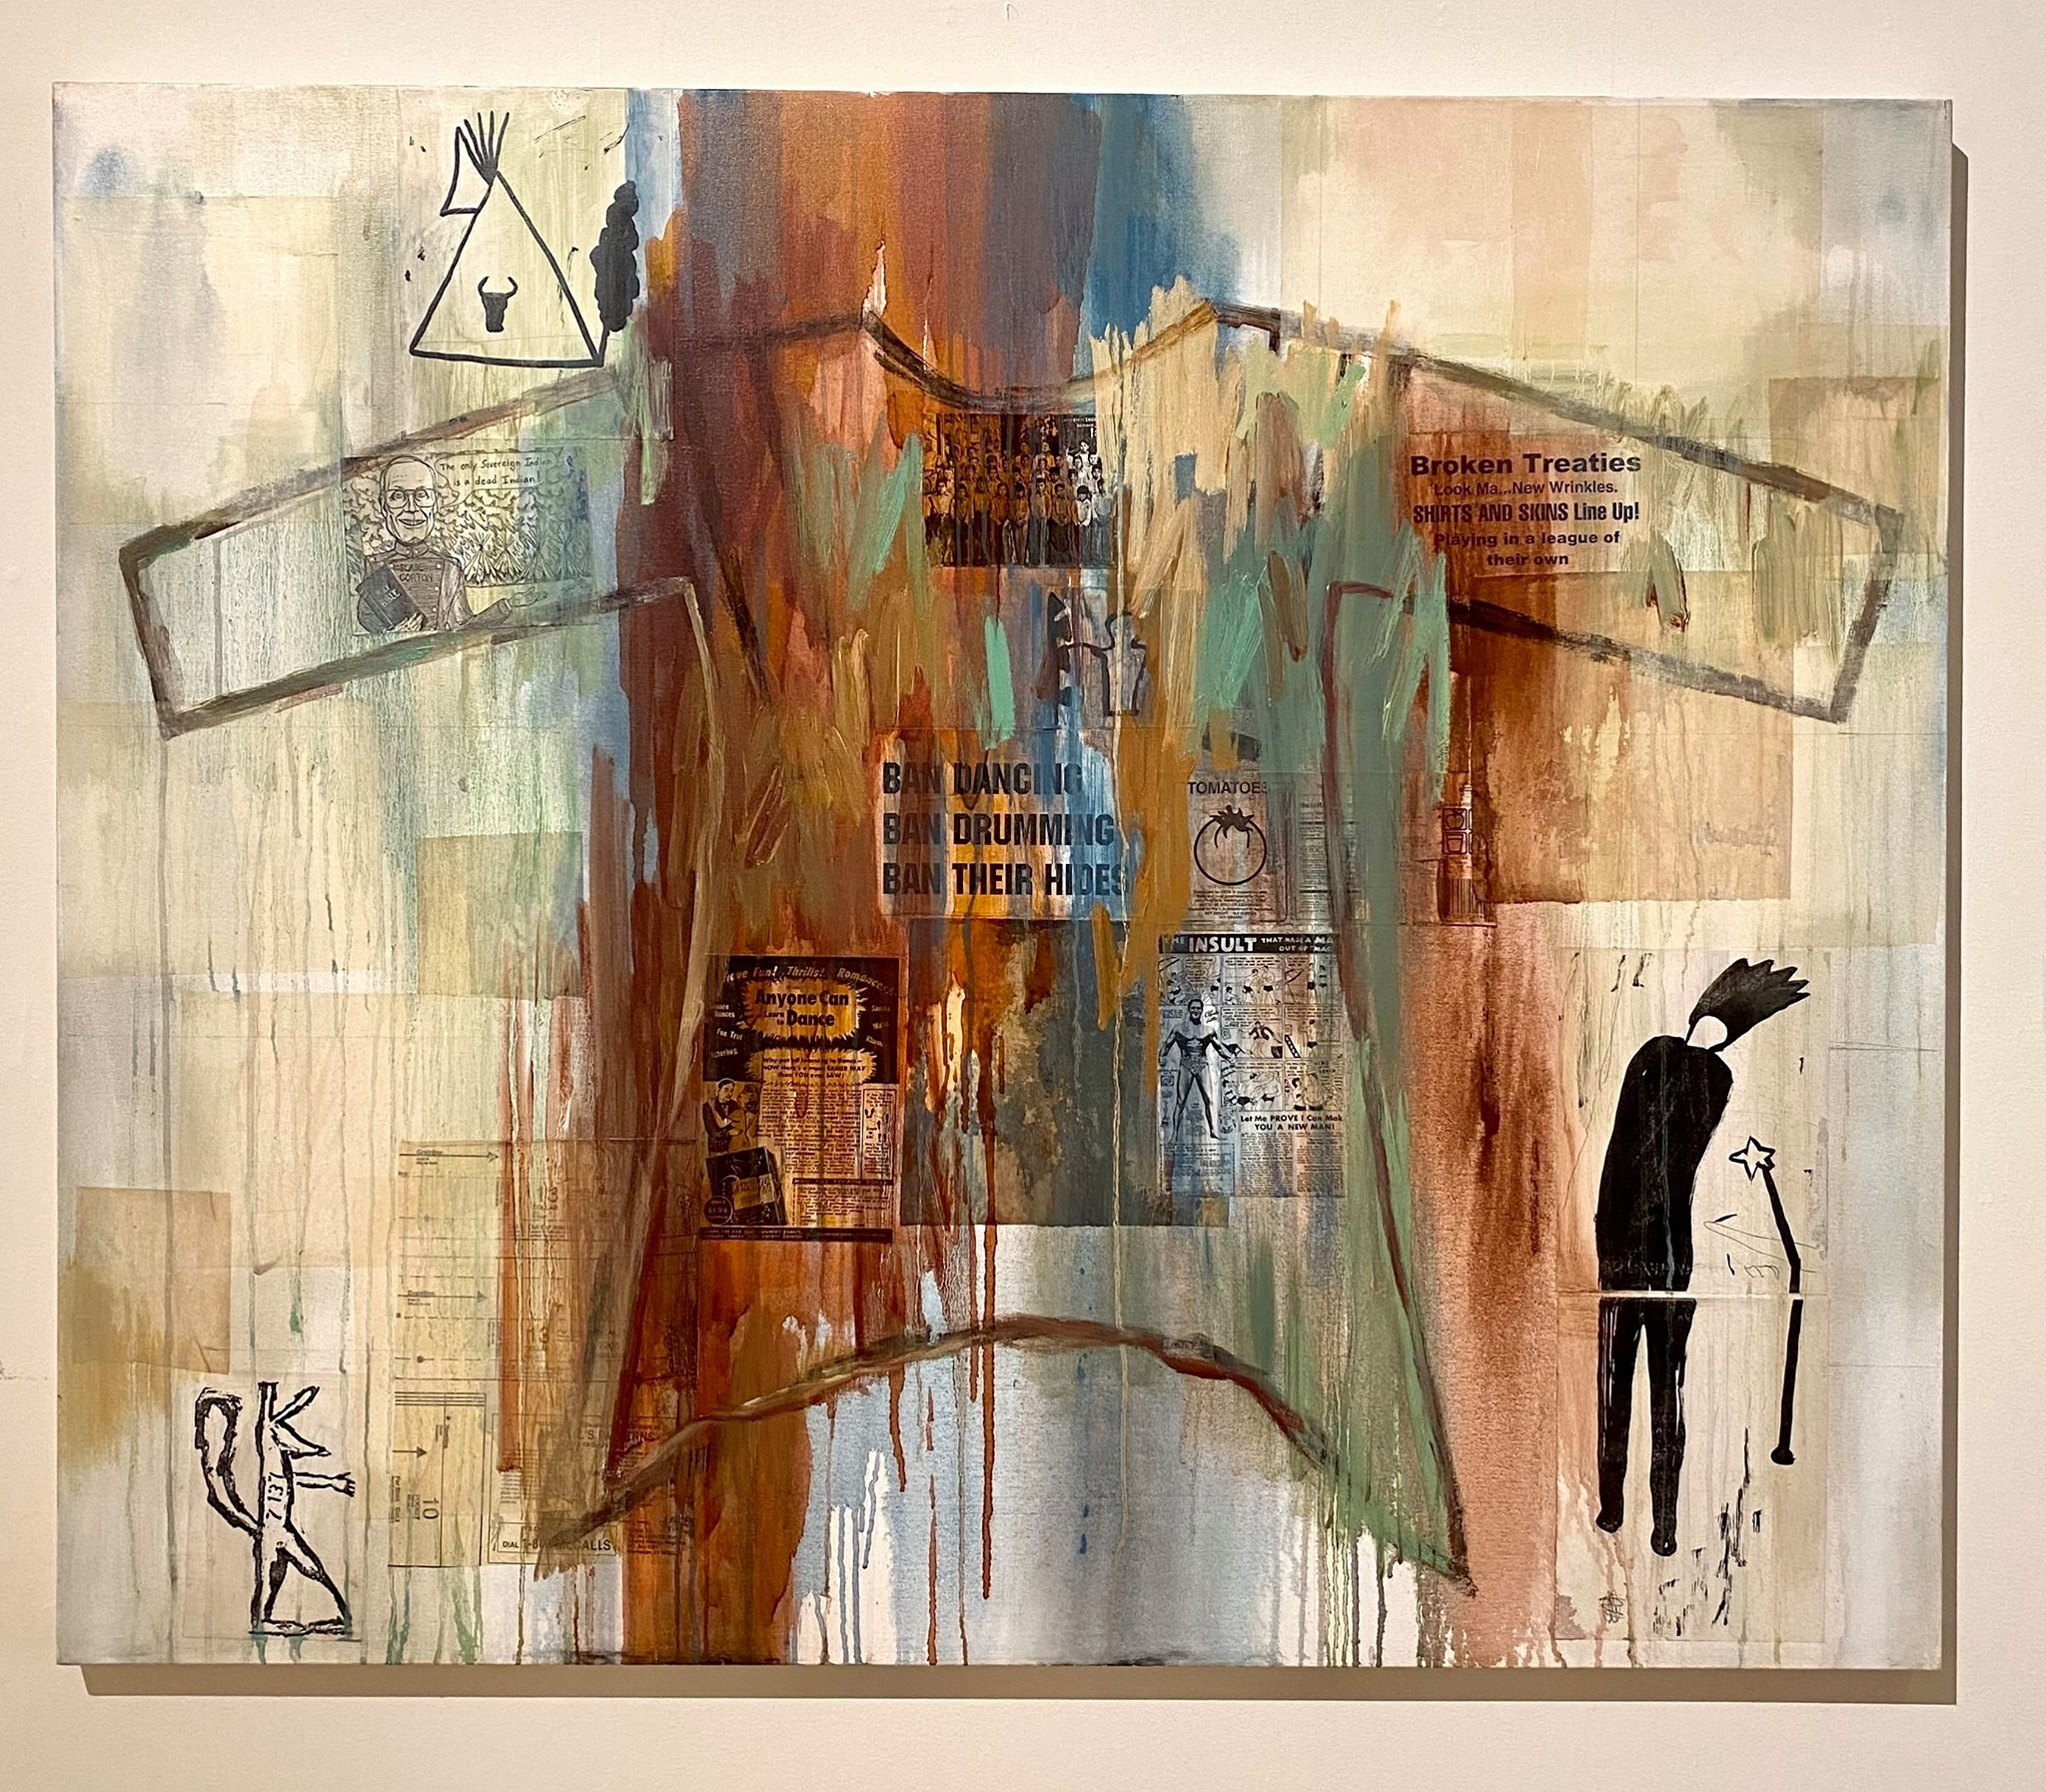 Jaune Quick-to-See Smith, <i>I See Red: Ban Dancing</i>, 1998, Mixed media on canvas, 50 × 60 × 1 in., General Purchase Fund and William and Bette Batchelor Memorial Acquisition Fund